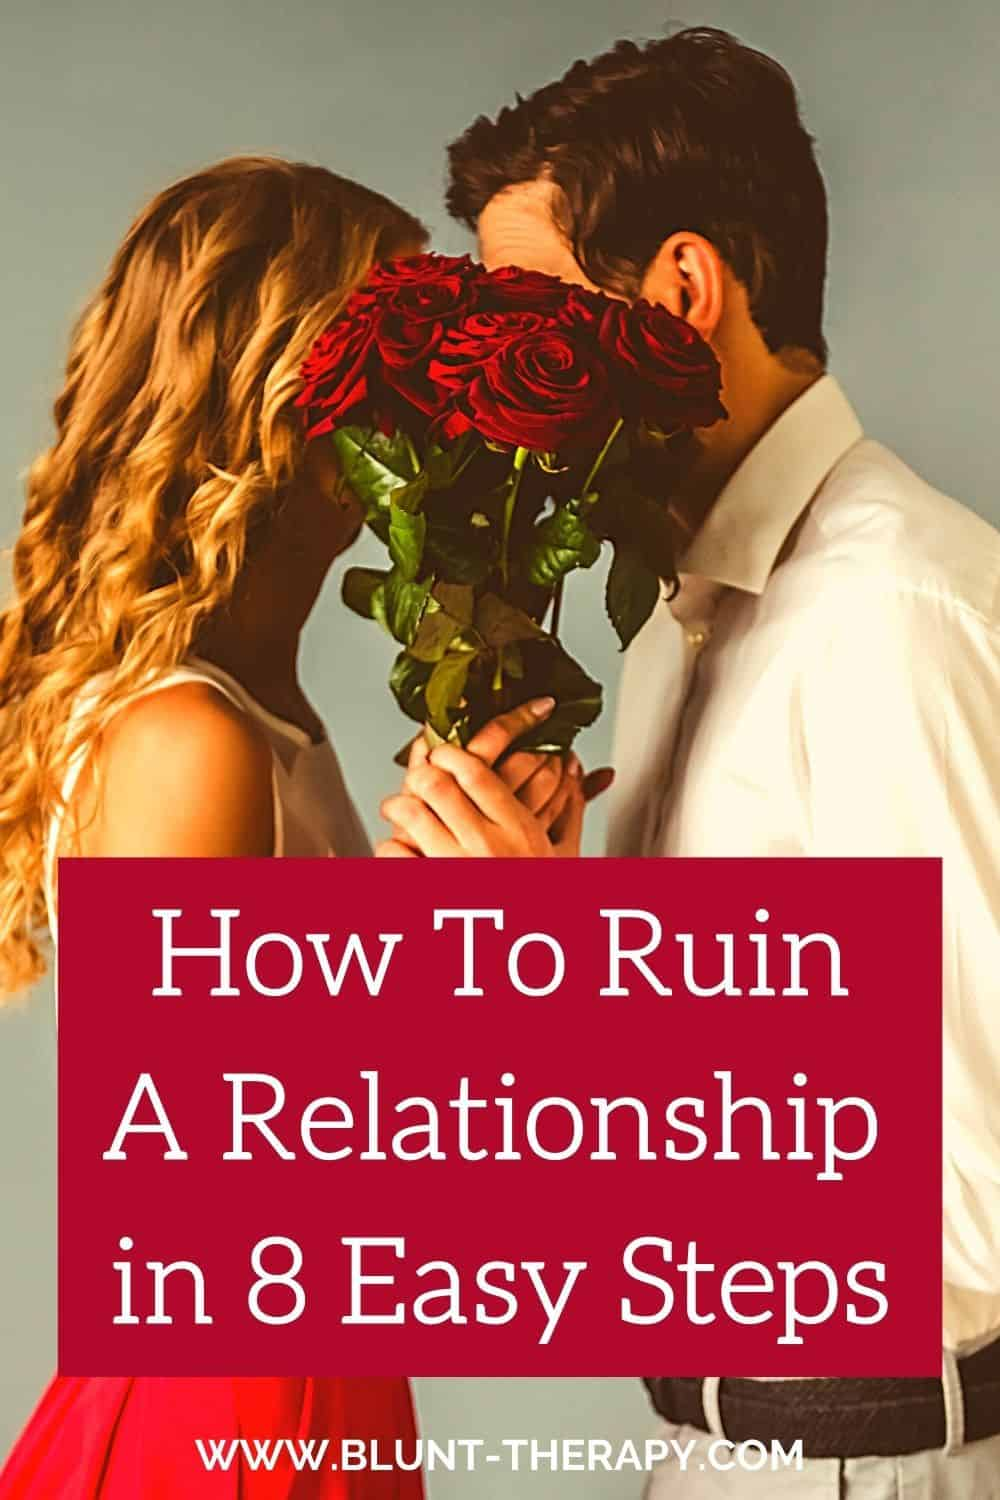 How To Ruin A Relationship In 8 Easy Steps